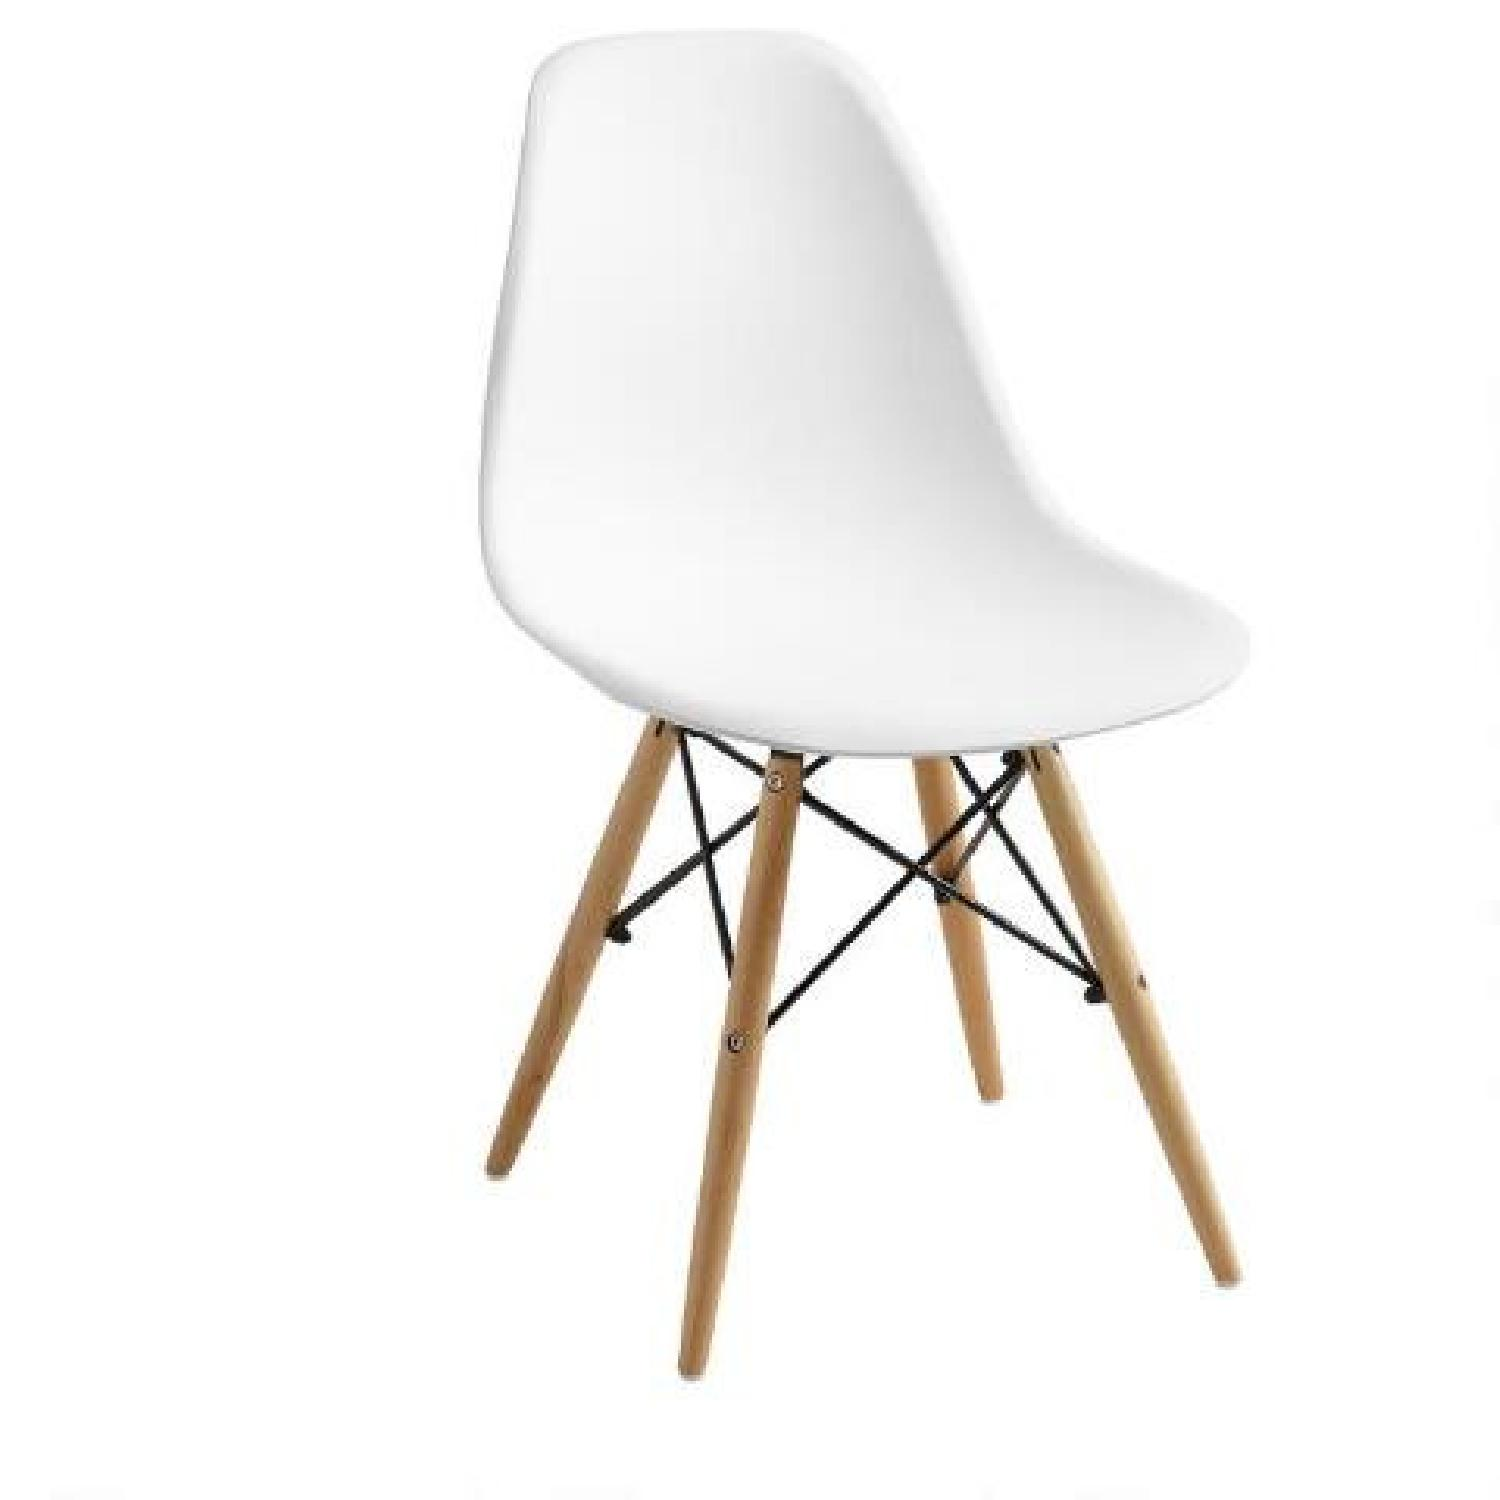 Eames Type Dining Chairs